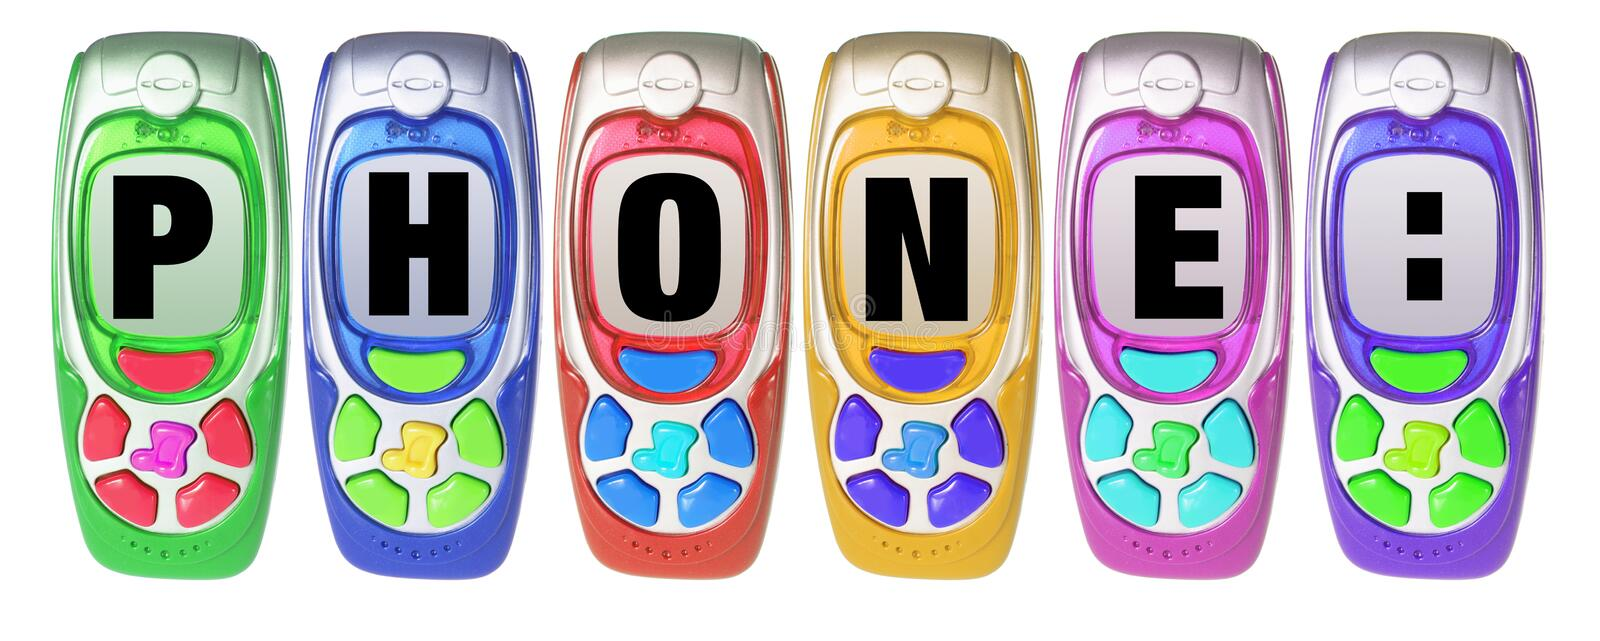 Download Toy Mobile Phones stock image. Image of play, choice - 25230909